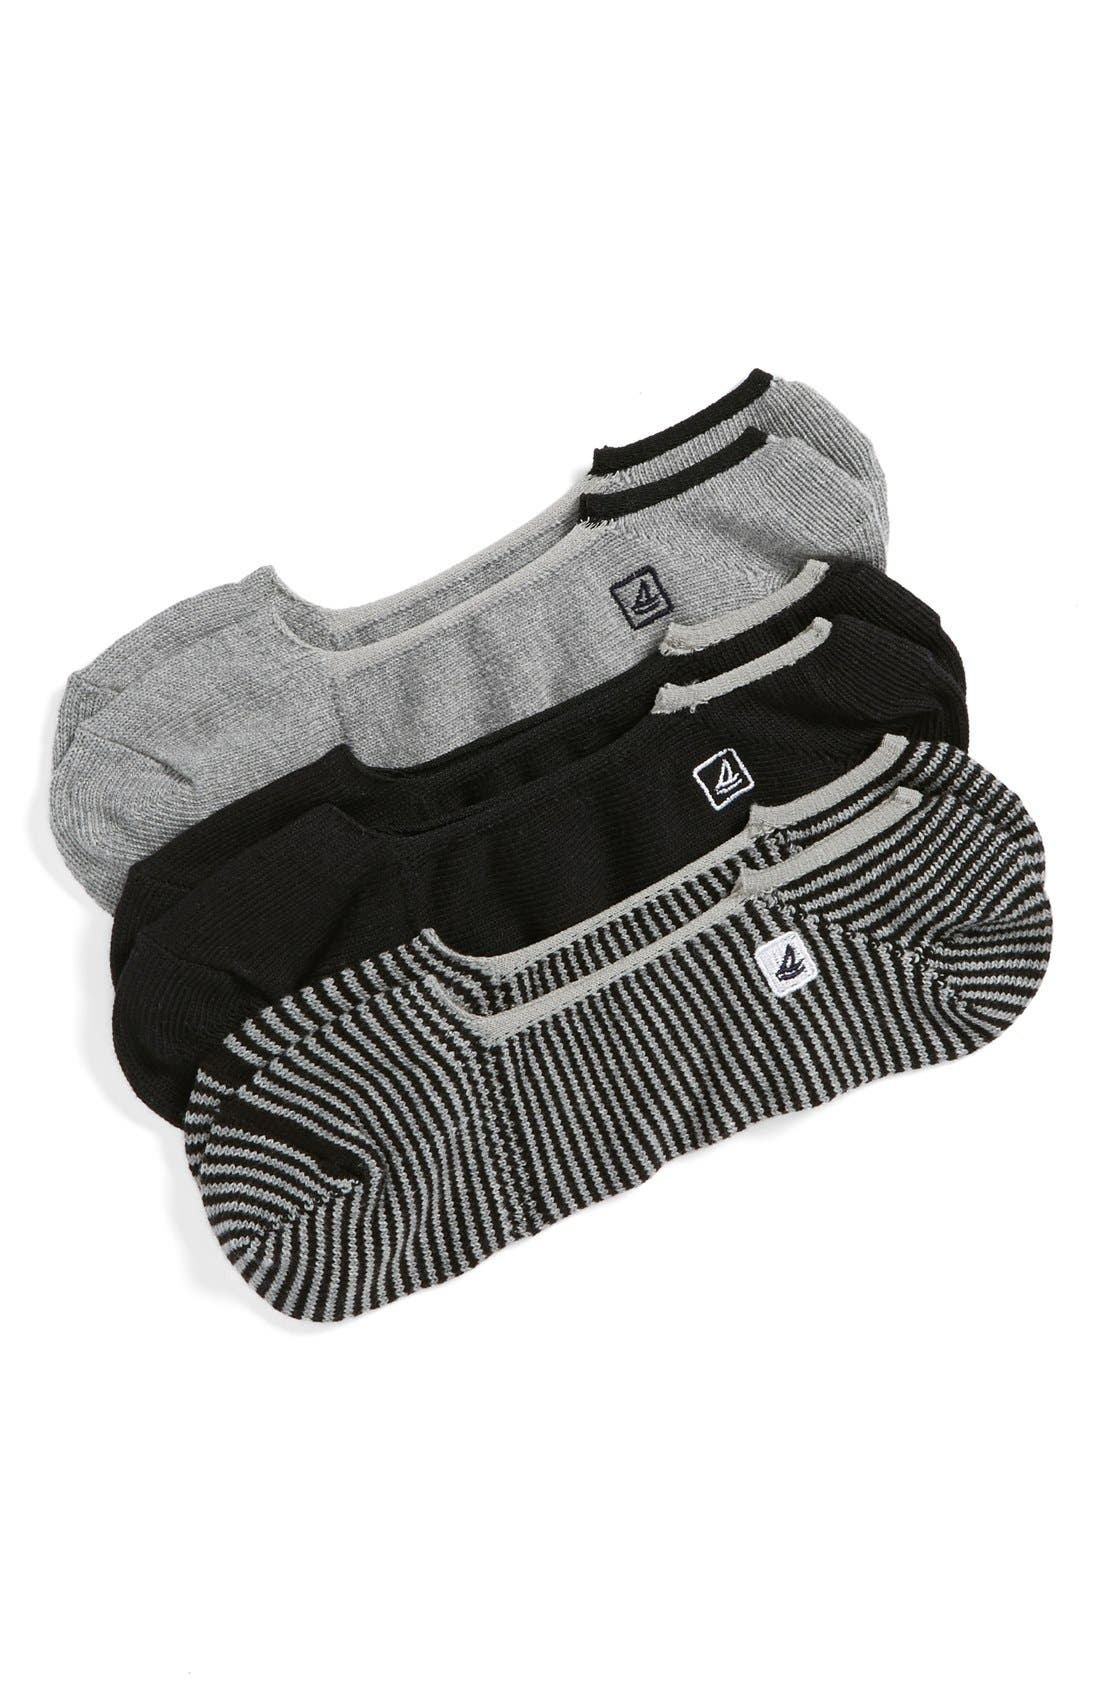 Alternate Image 1 Selected - Sperry Skimmers Feed Assorted 3-Pack Socks